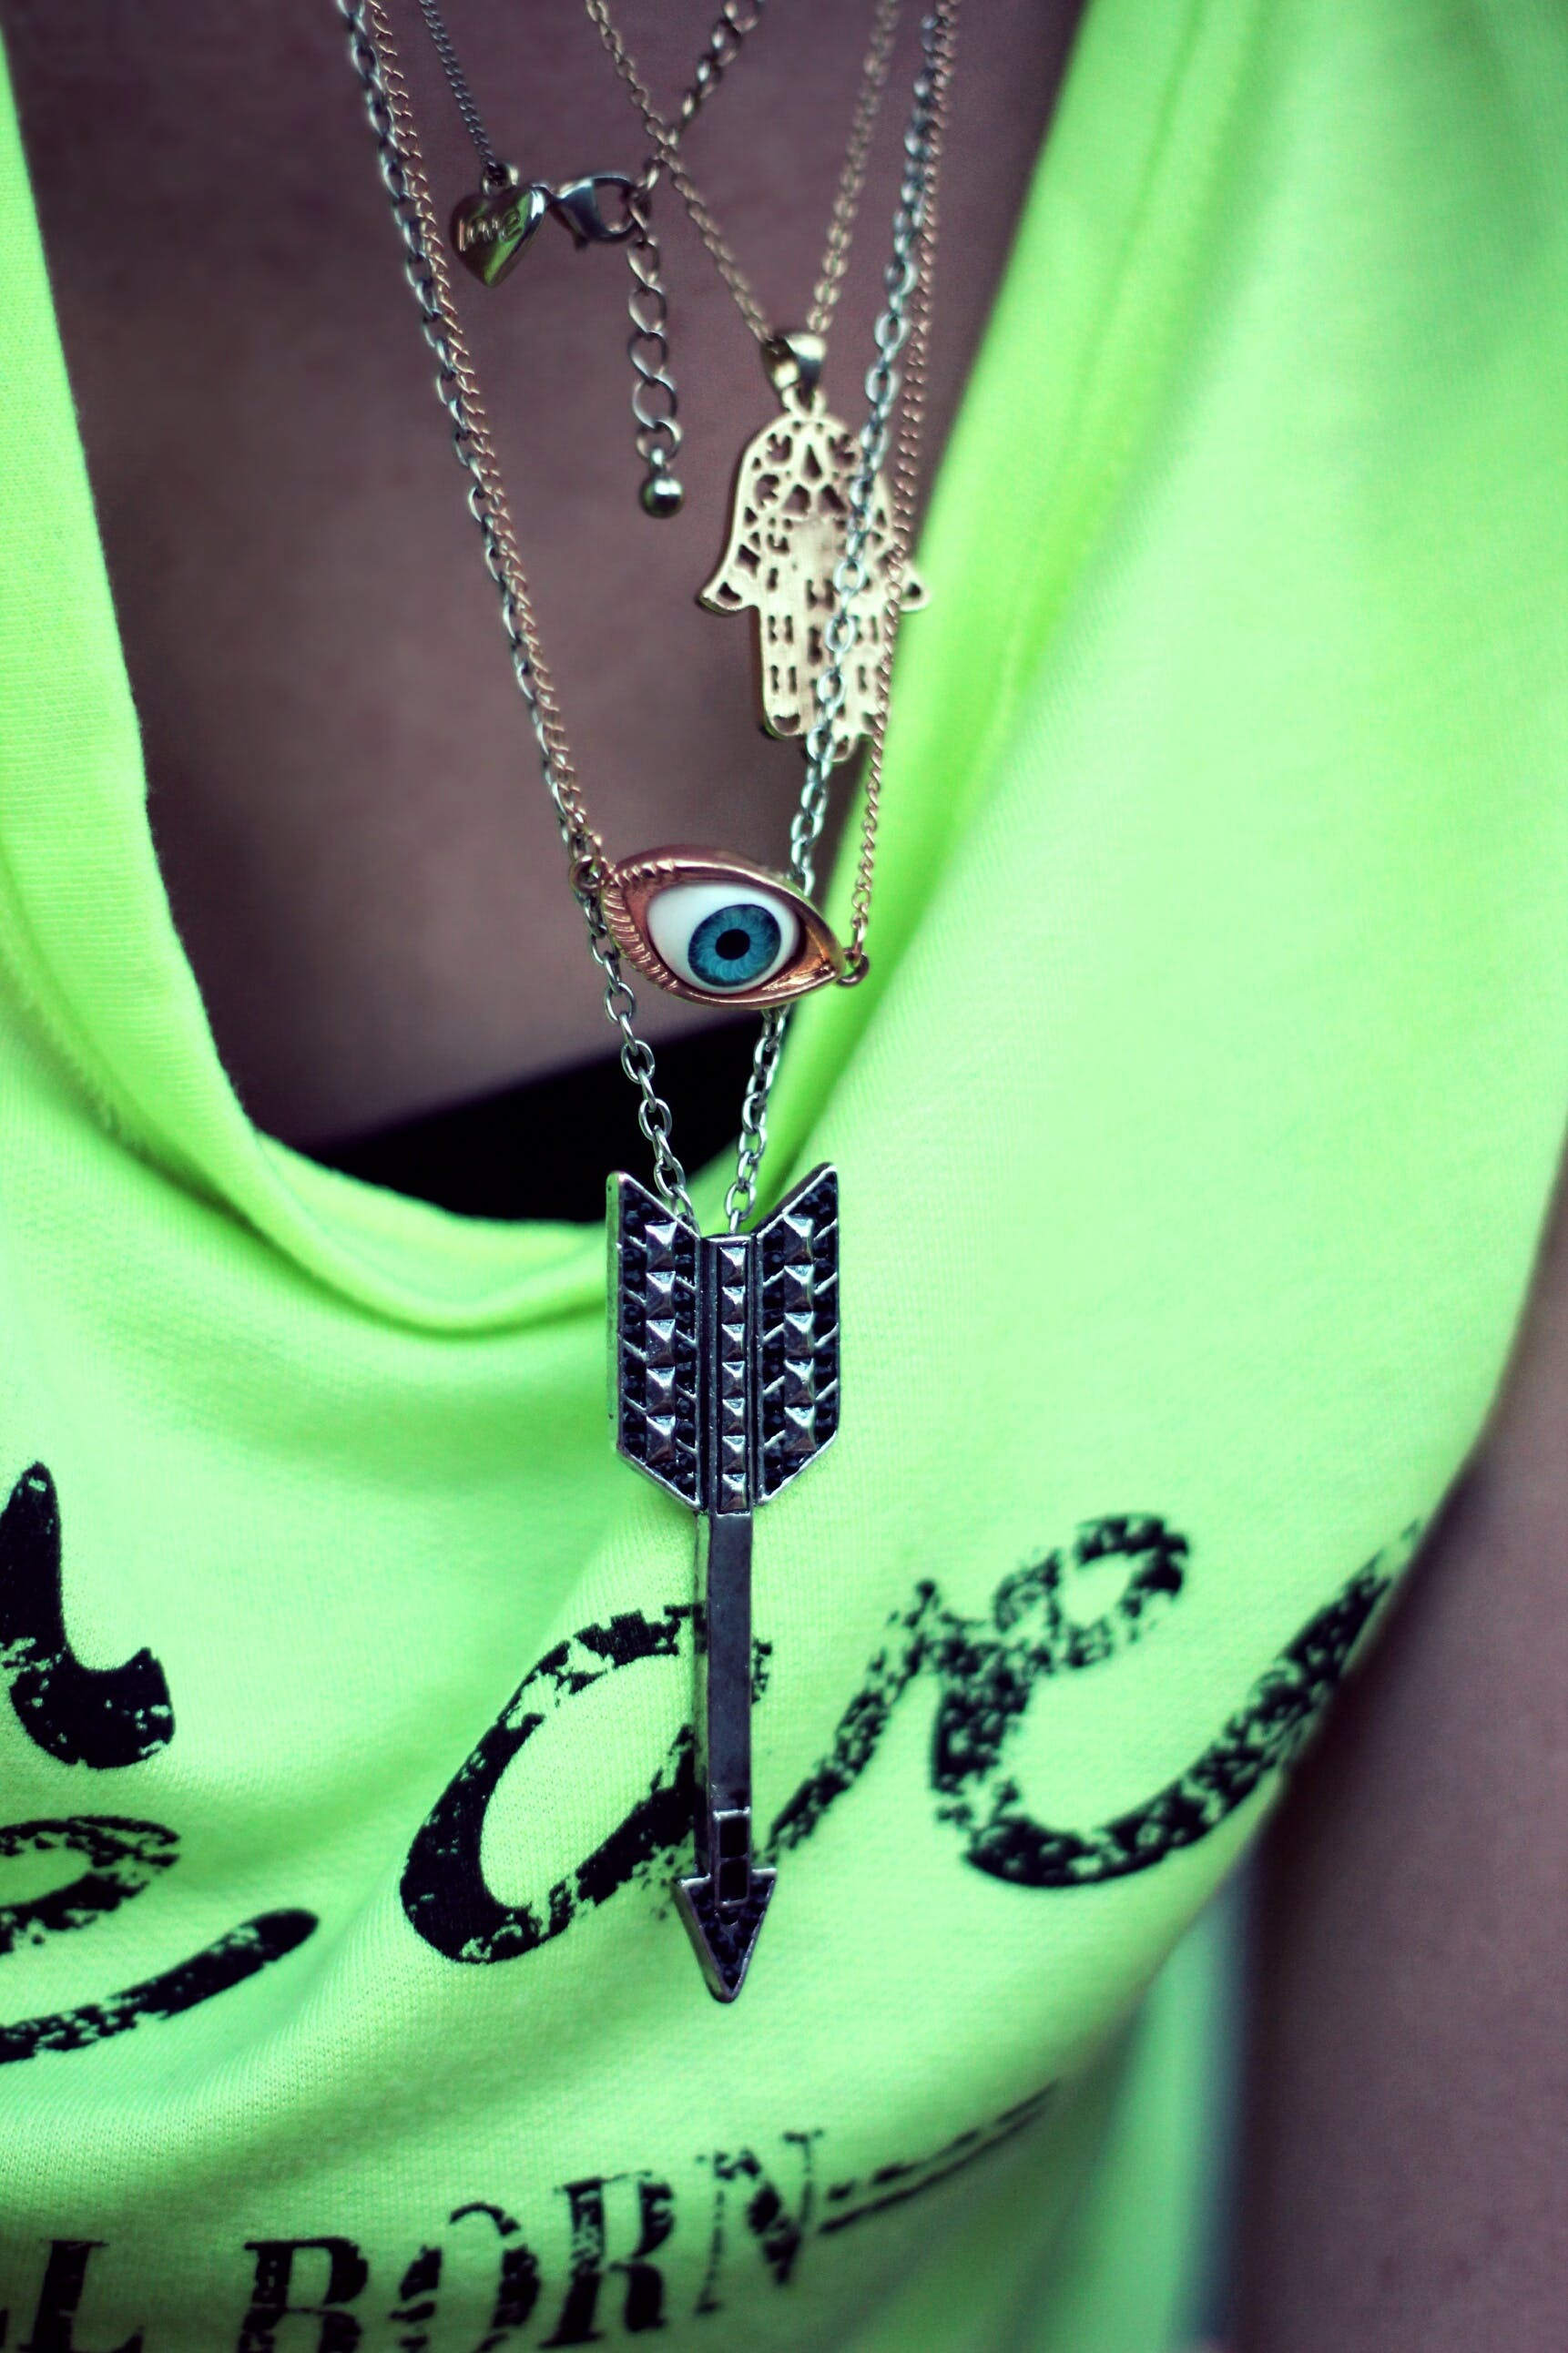 Pendants: eye, arrow, hamsa